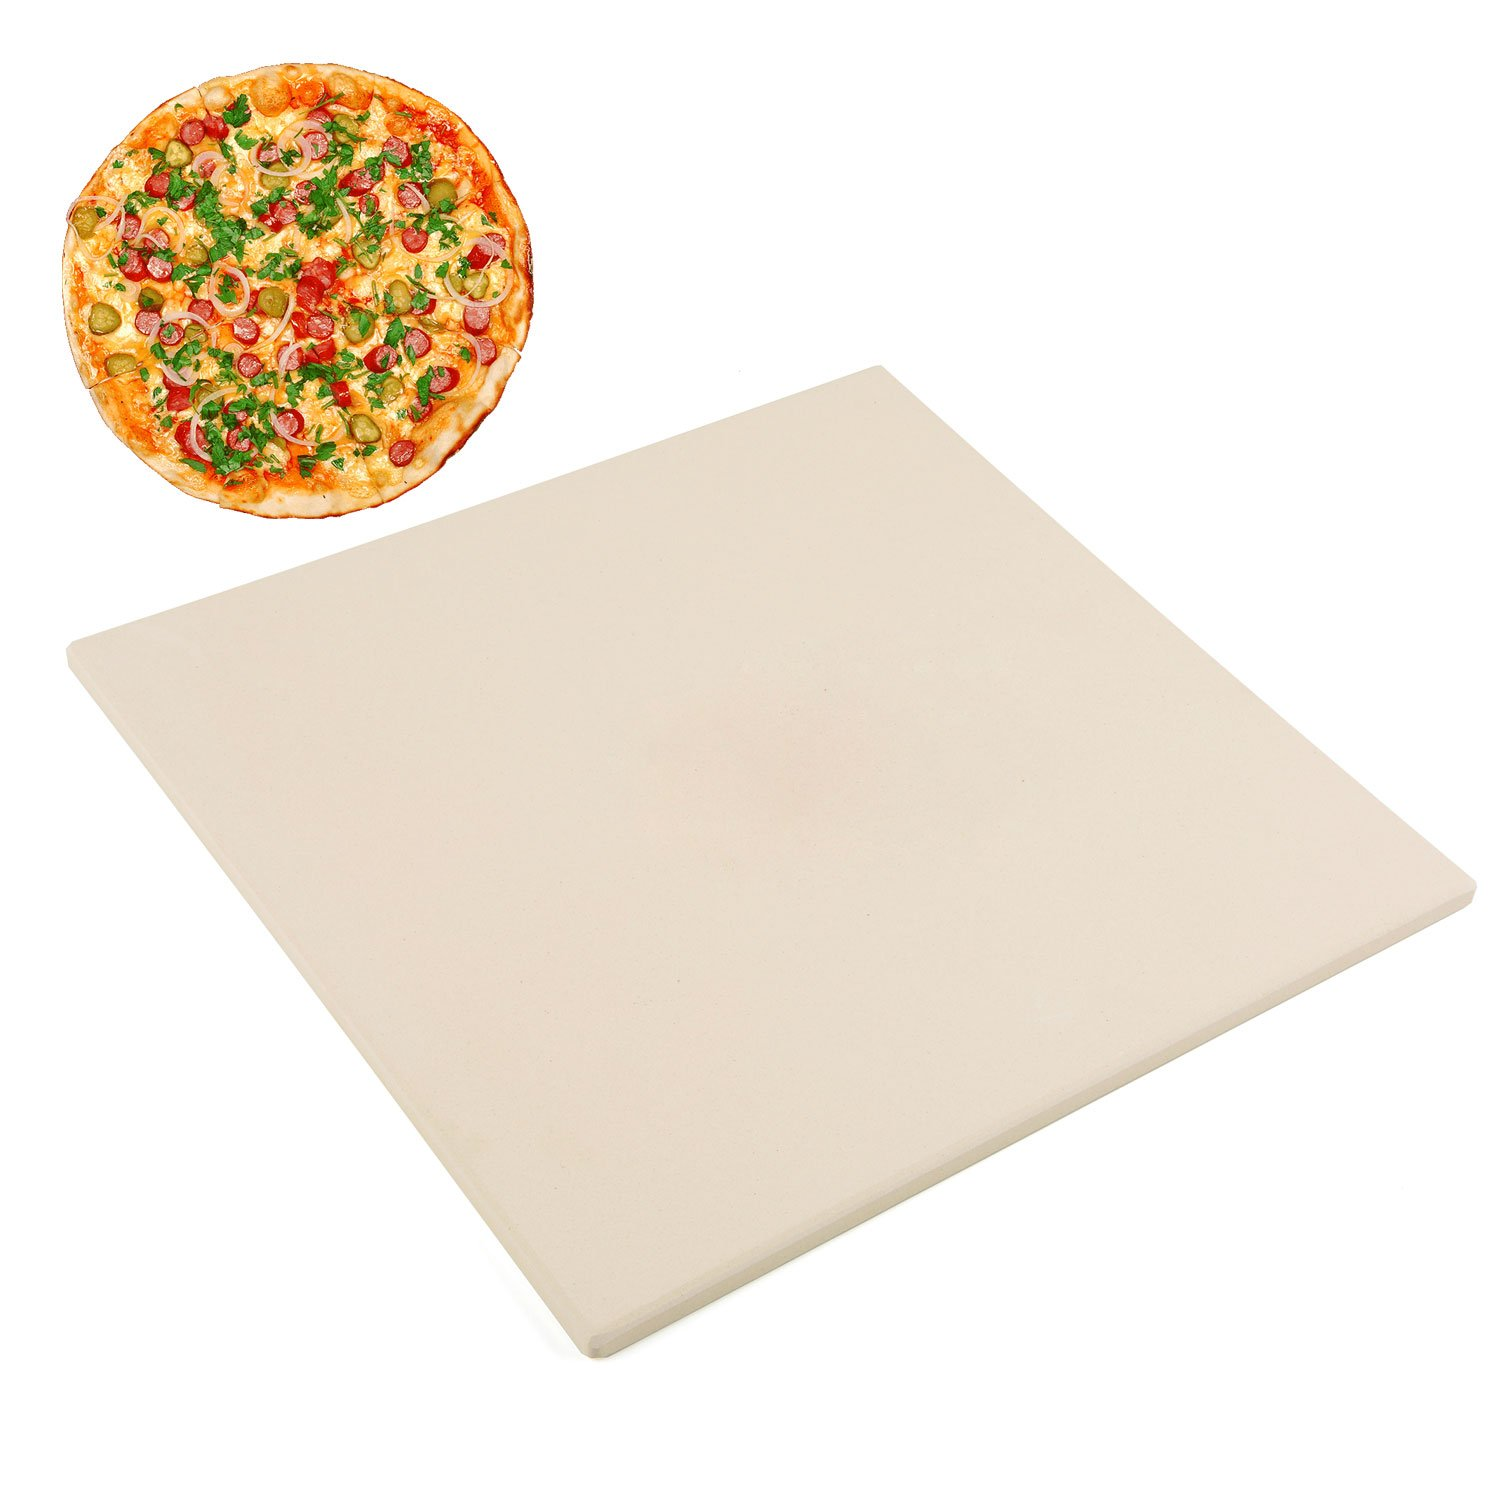 "Waykea 12"" x 12"" Pizza Stone Square Baking Stone 